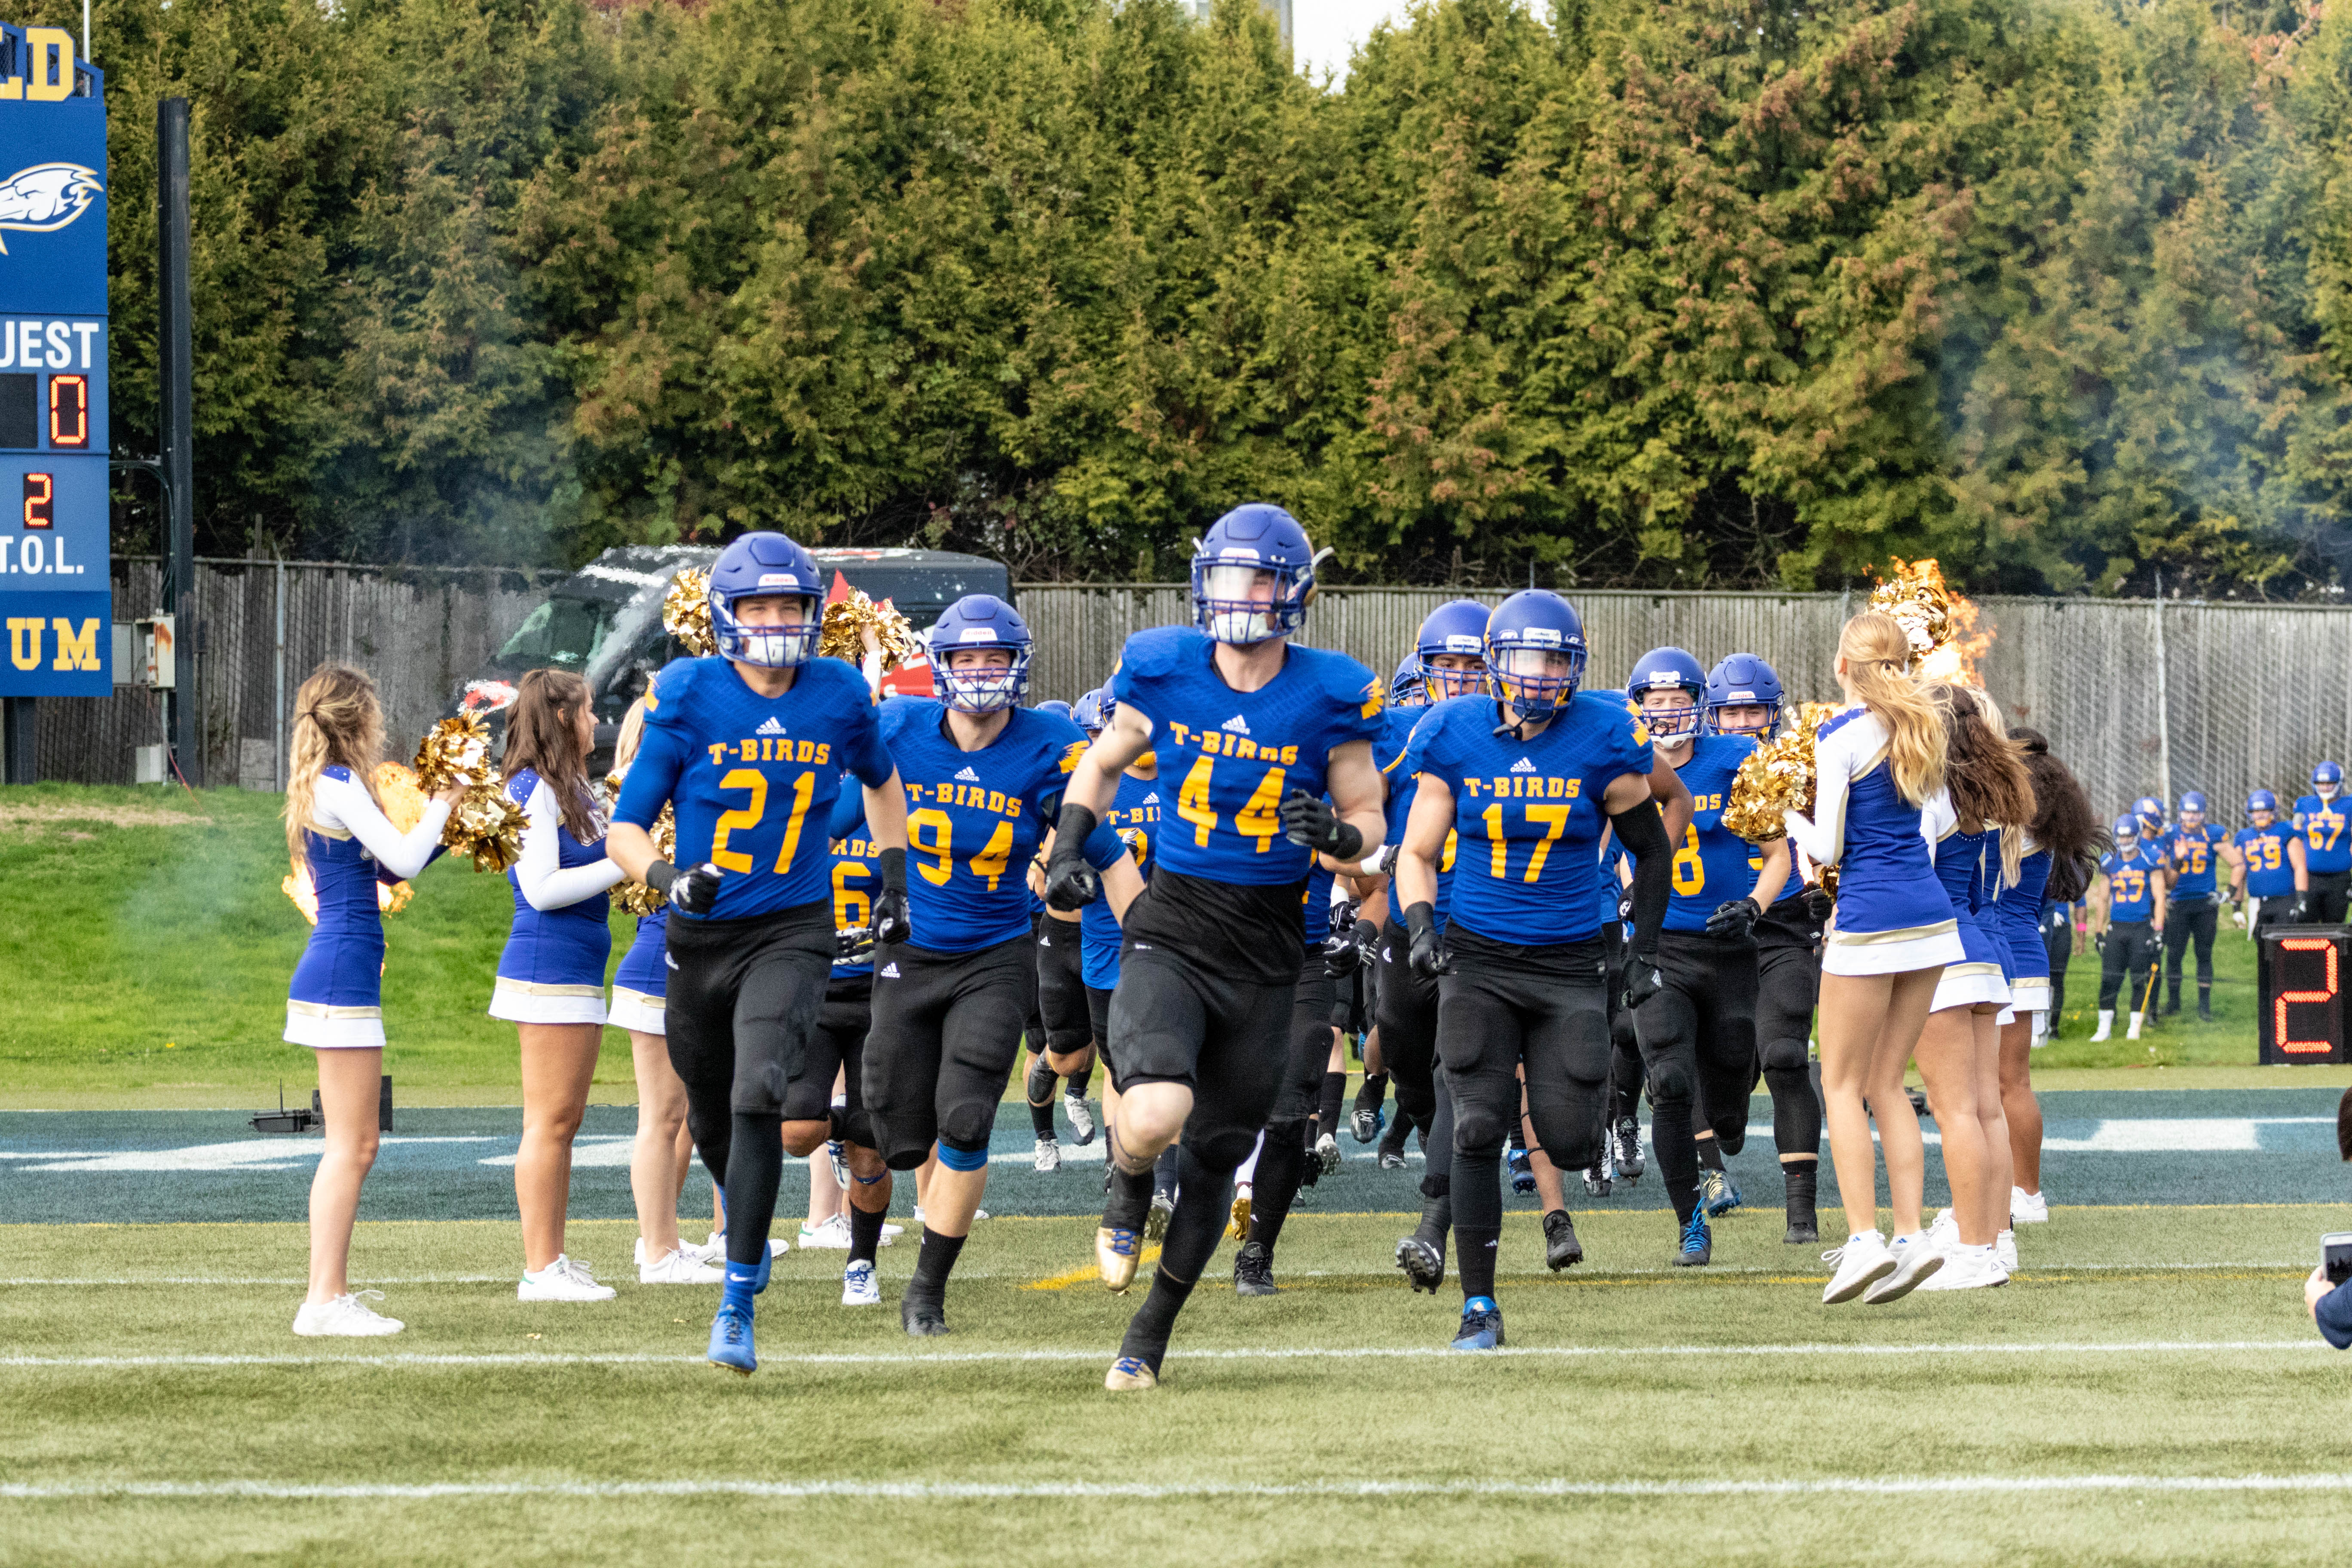 UBC football takes the field.